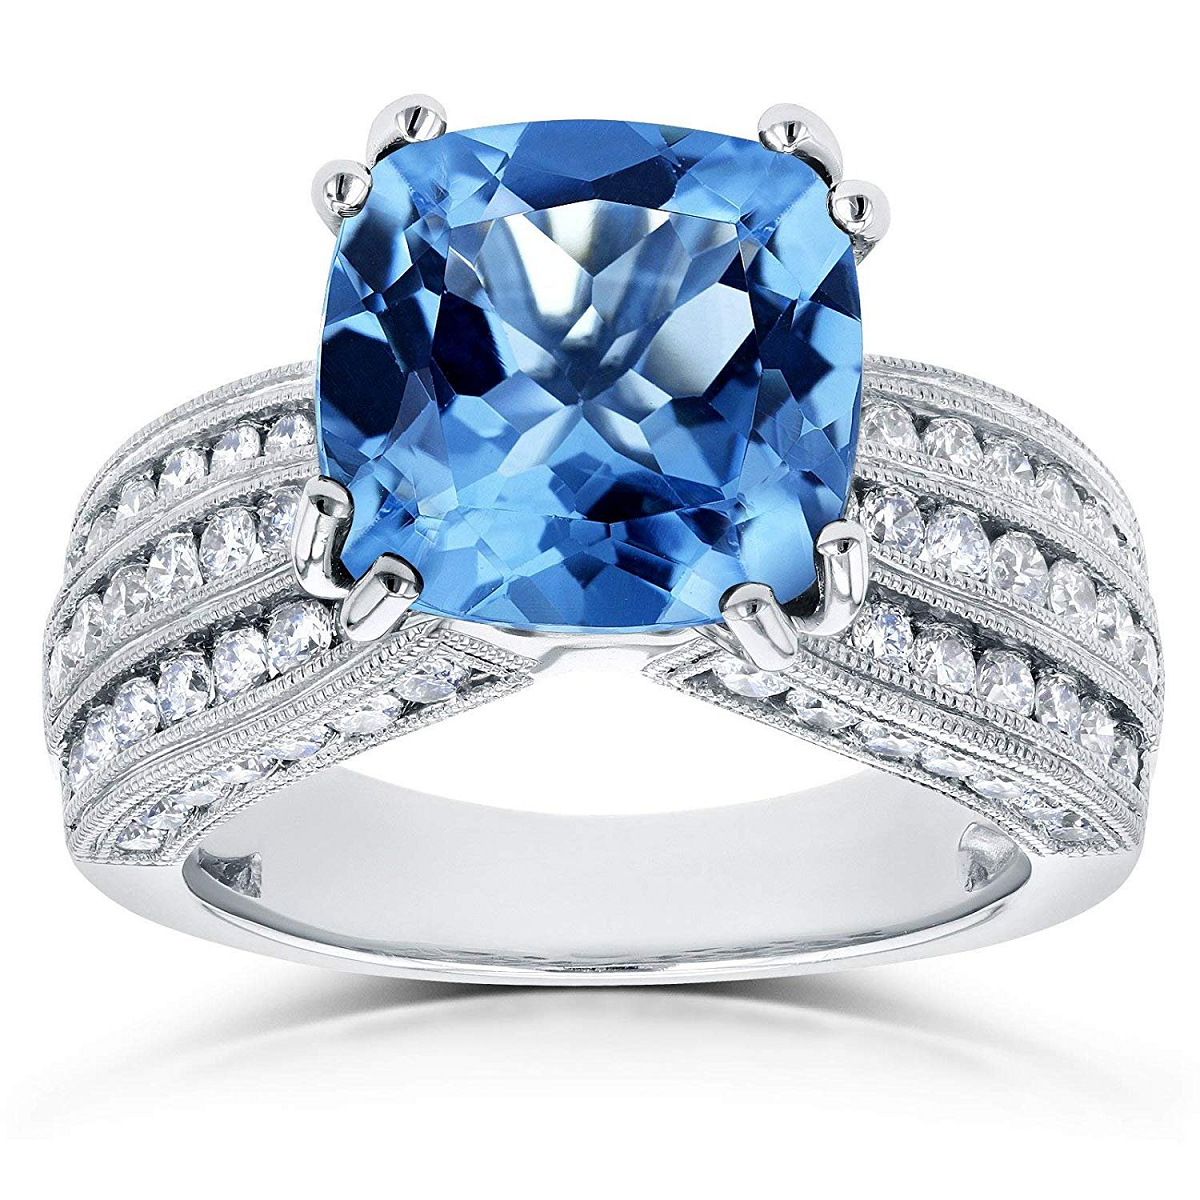 Best massive bling rings 2021 Glittering Cushion Cut Blue Topaz Stone with 3 Row Diamonds on Sterling Silver Ring